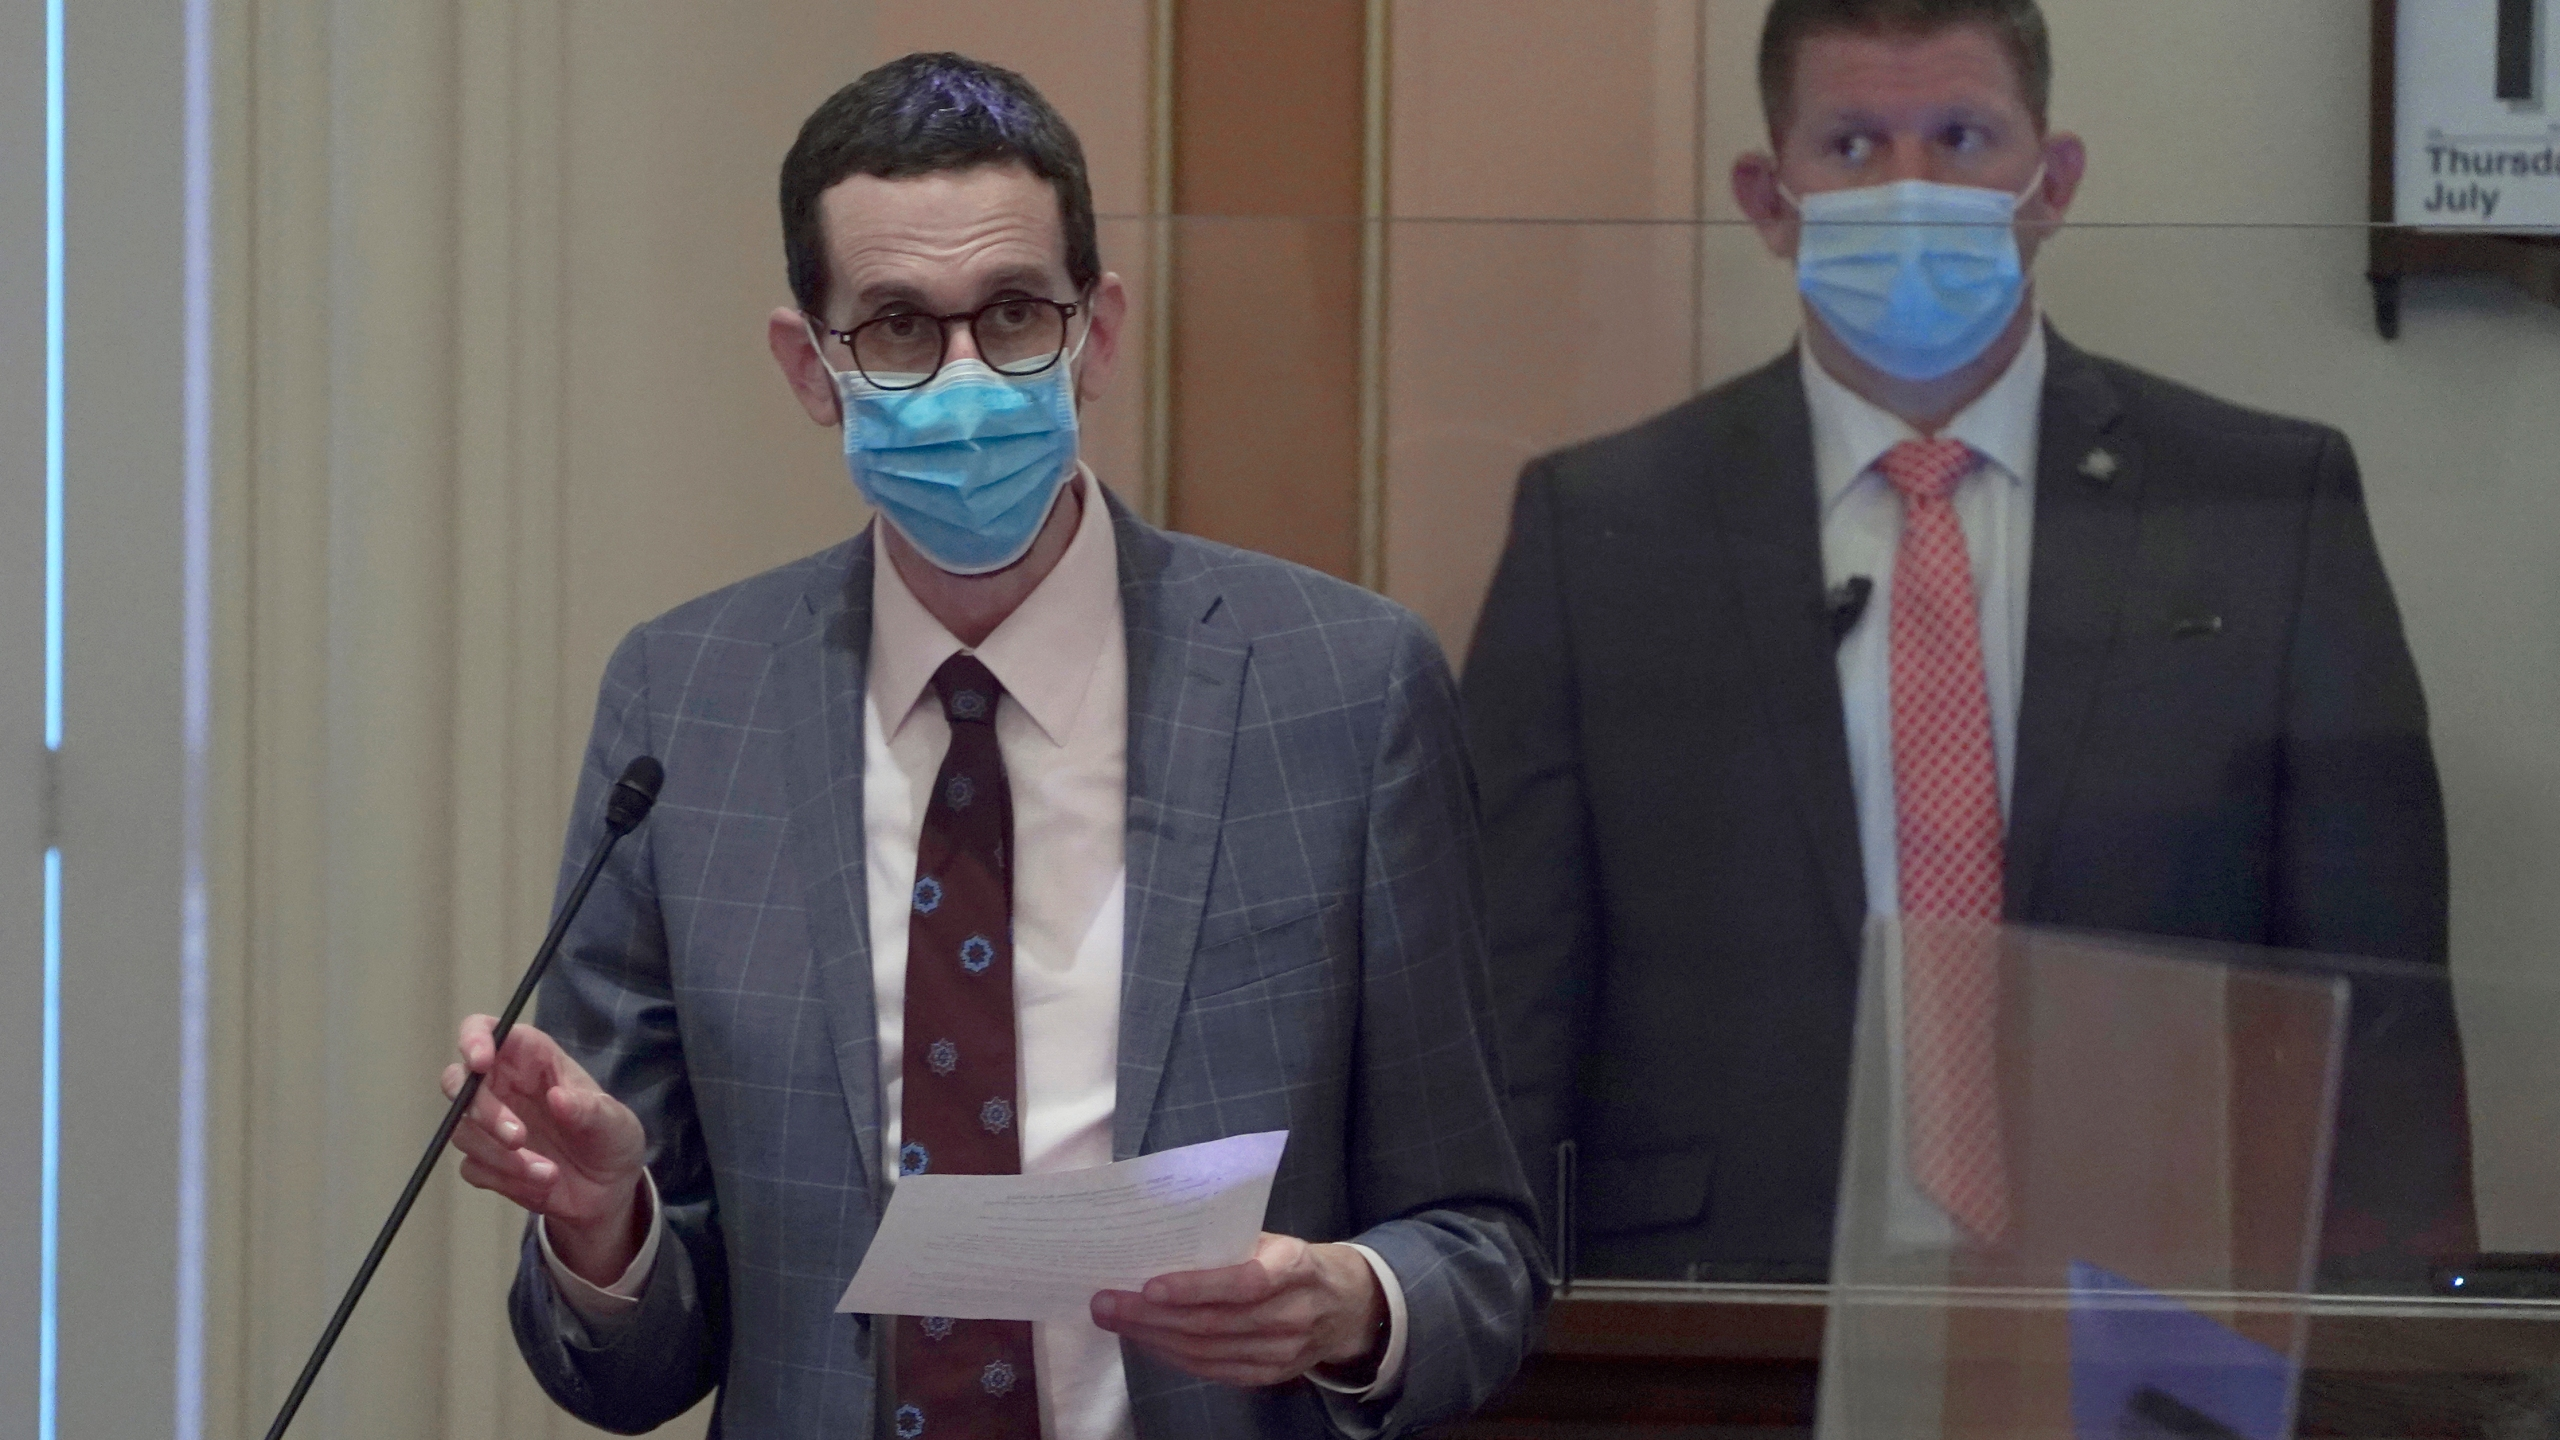 State Sen. Scott Wiener, D-San Francisco, wears a face mask as he speaks on the floor of the Senate in Sacramento, Calif., on July 15, 2021. (AP Photo/Rich Pedroncelli)